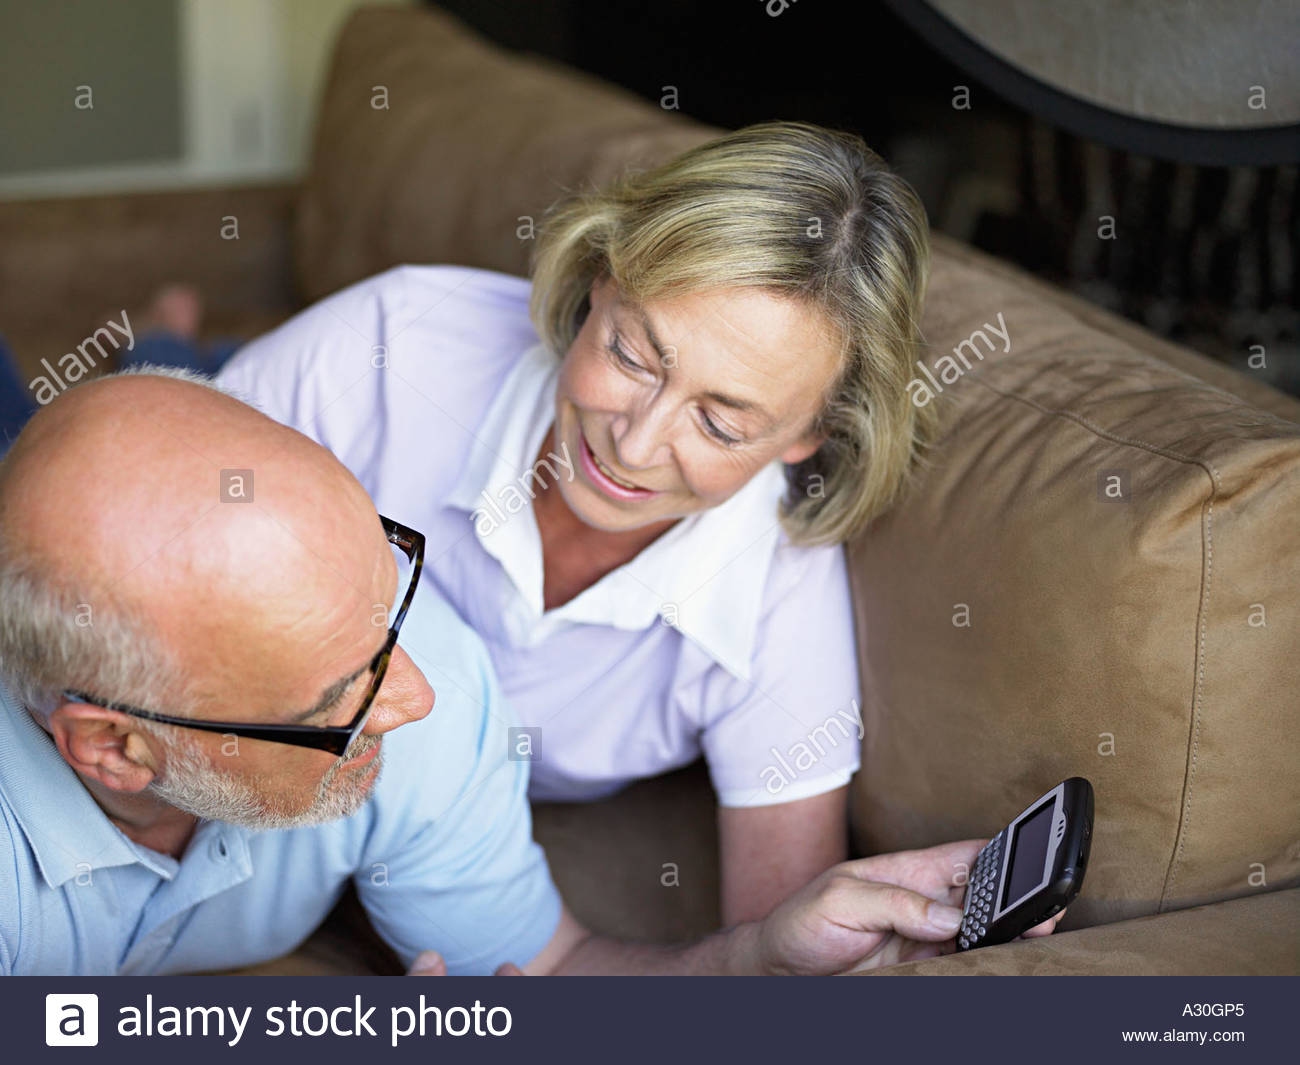 Couple with handheld computer - Stock Image